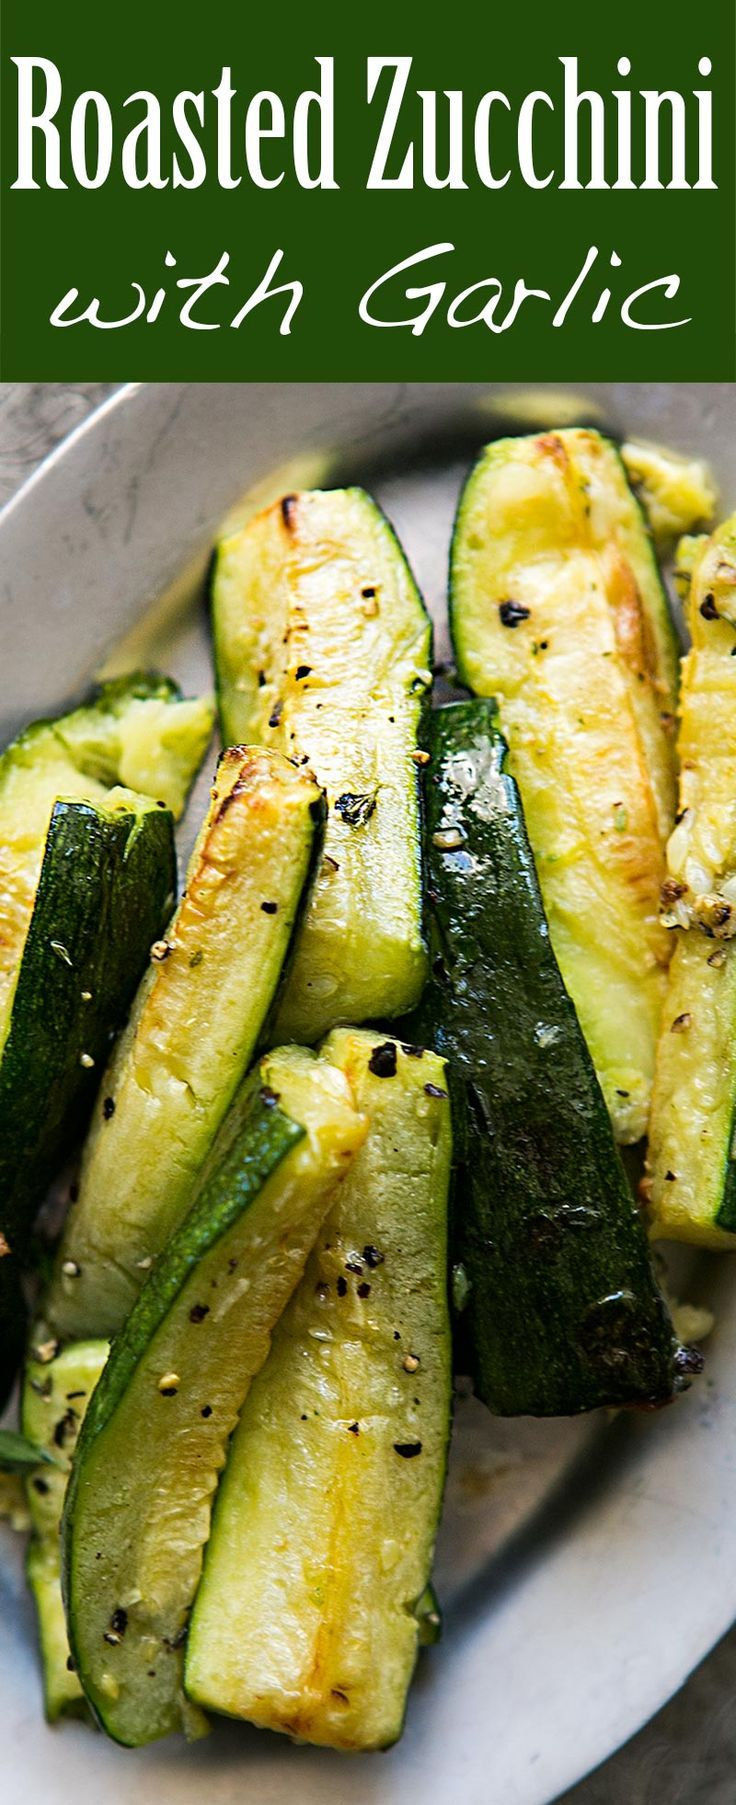 Easy roasted zucchini recipe! fresh zucchini, cut lengthwise, oven-roasted with olive oil, garlic, black pepper, and Herbes de Provence. #vegan #paleo